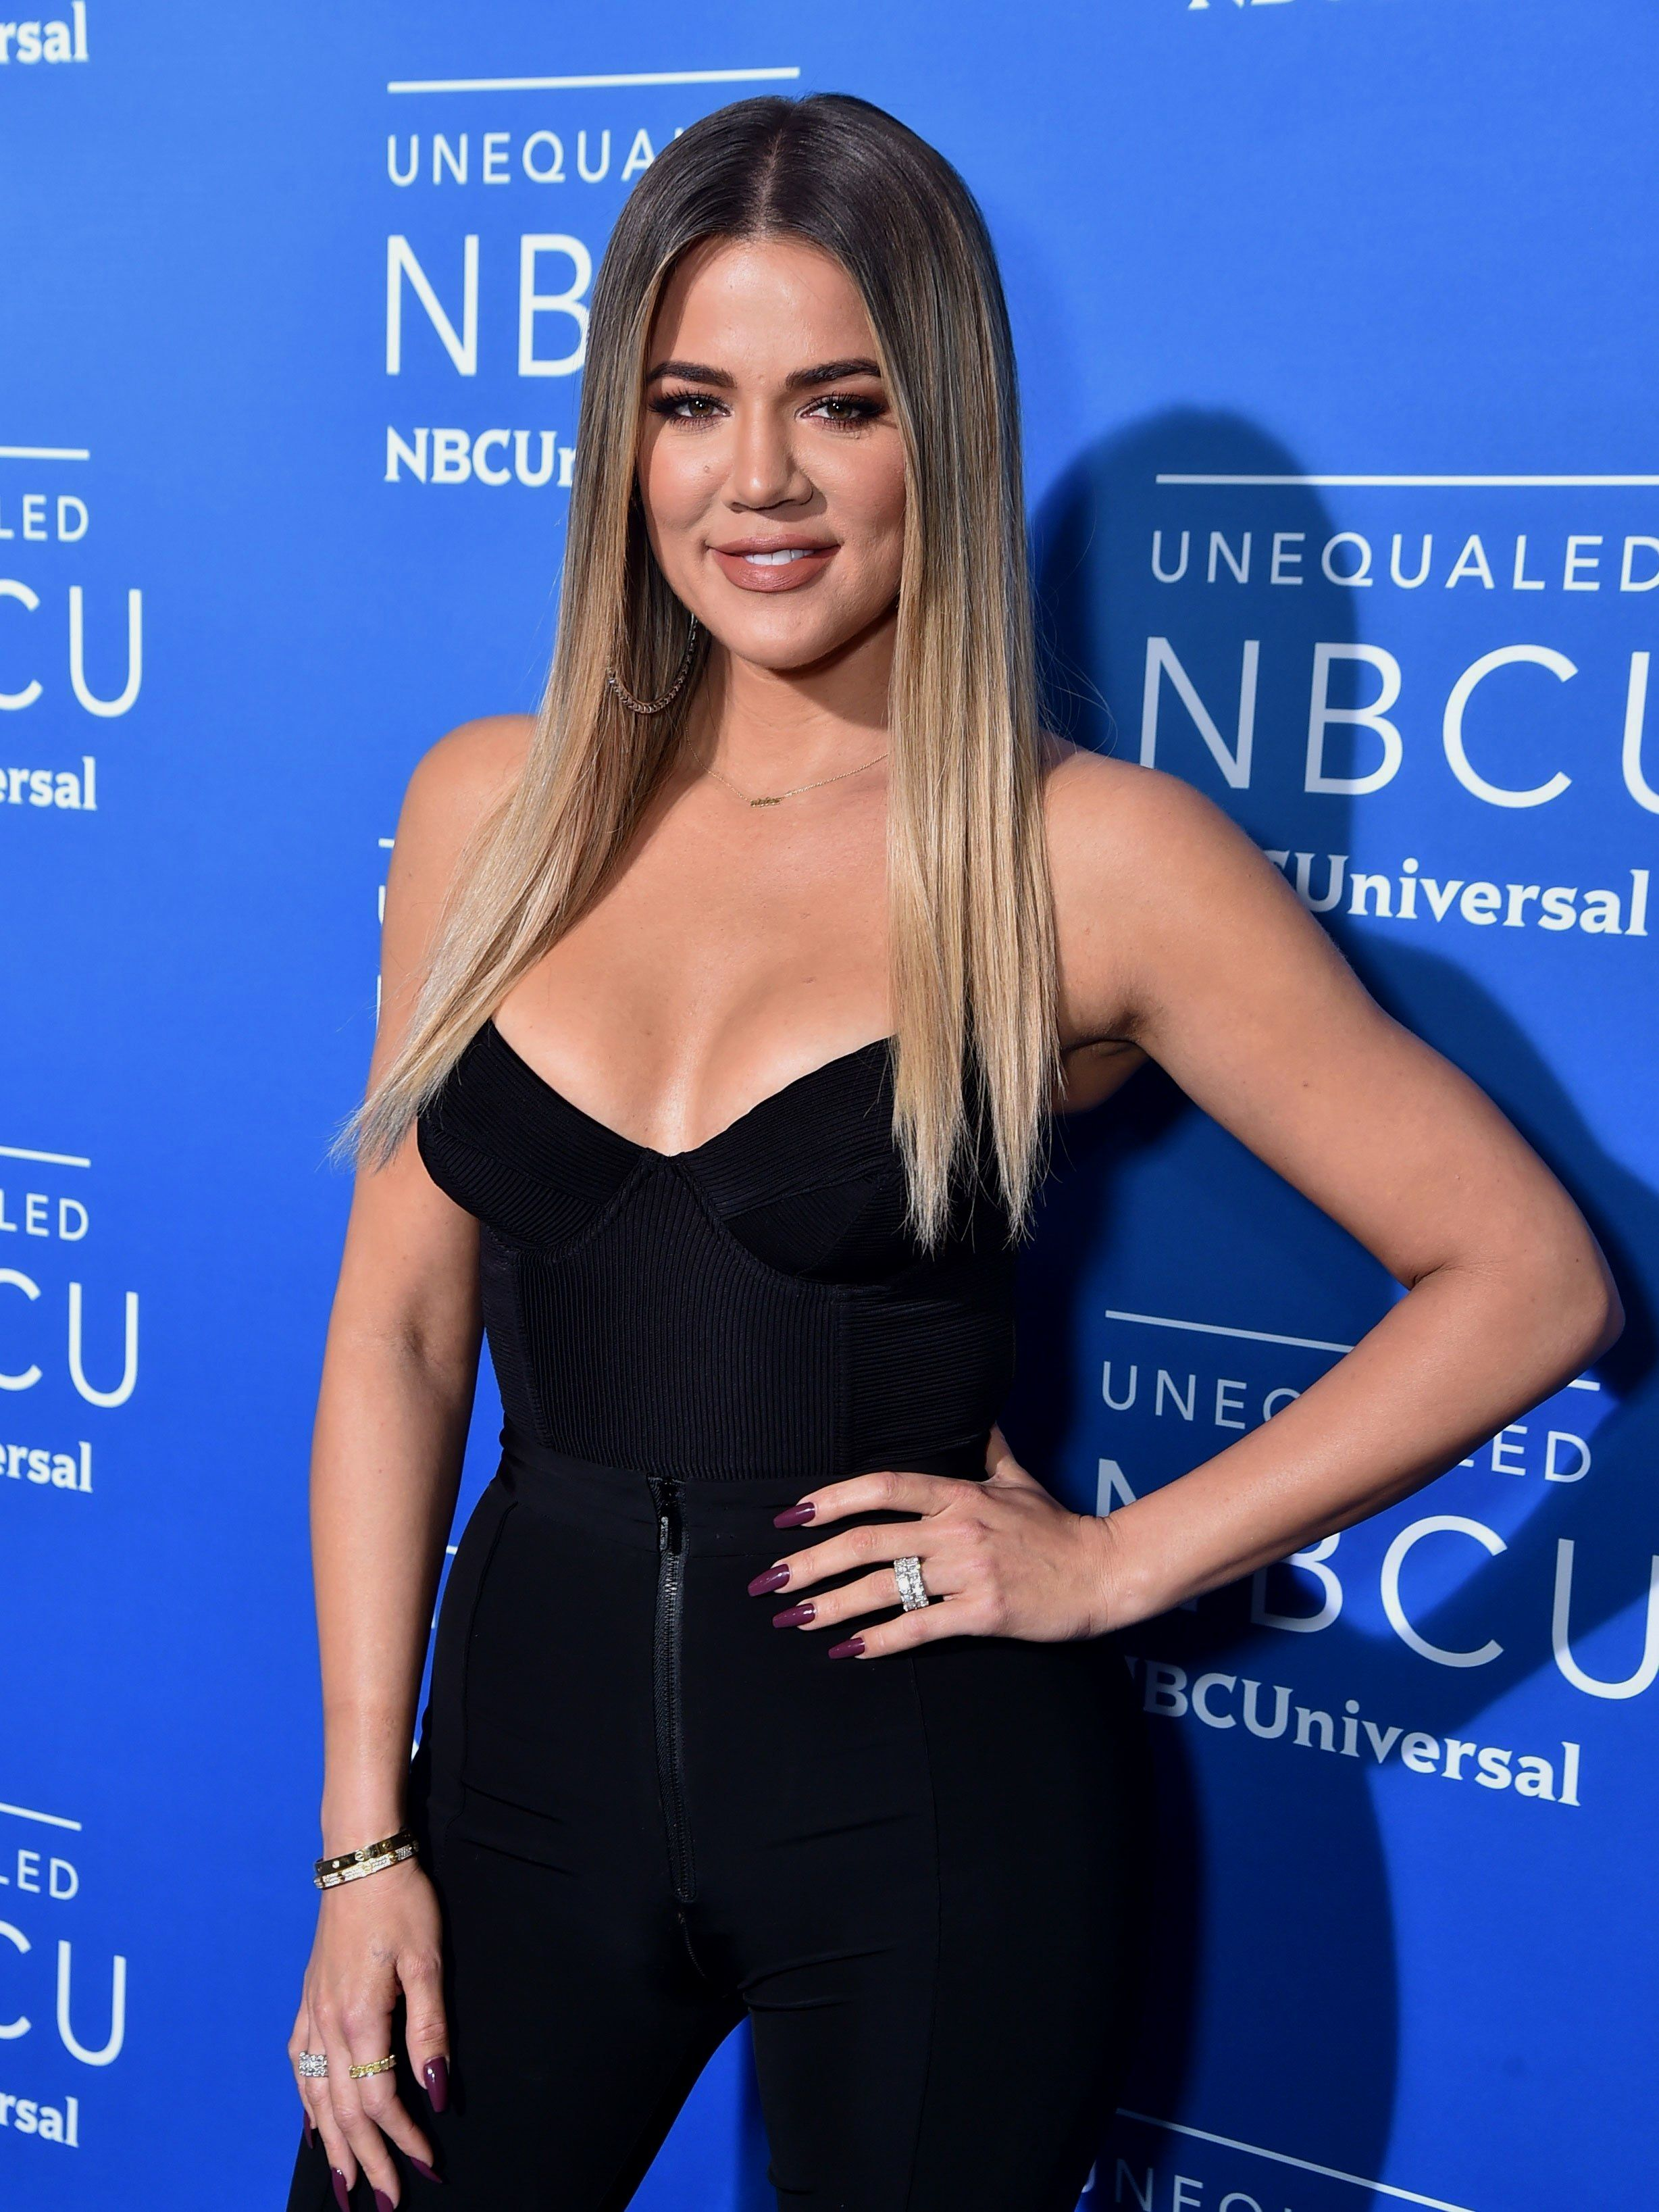 Khloe Kardashian Swears This Organic Oil Is the better Acne Therapy AcneScars HowToGetRidOfAcneScars Khloe Kardashian Swears This Pure Oil Is the Best Acne Treatment Acne...